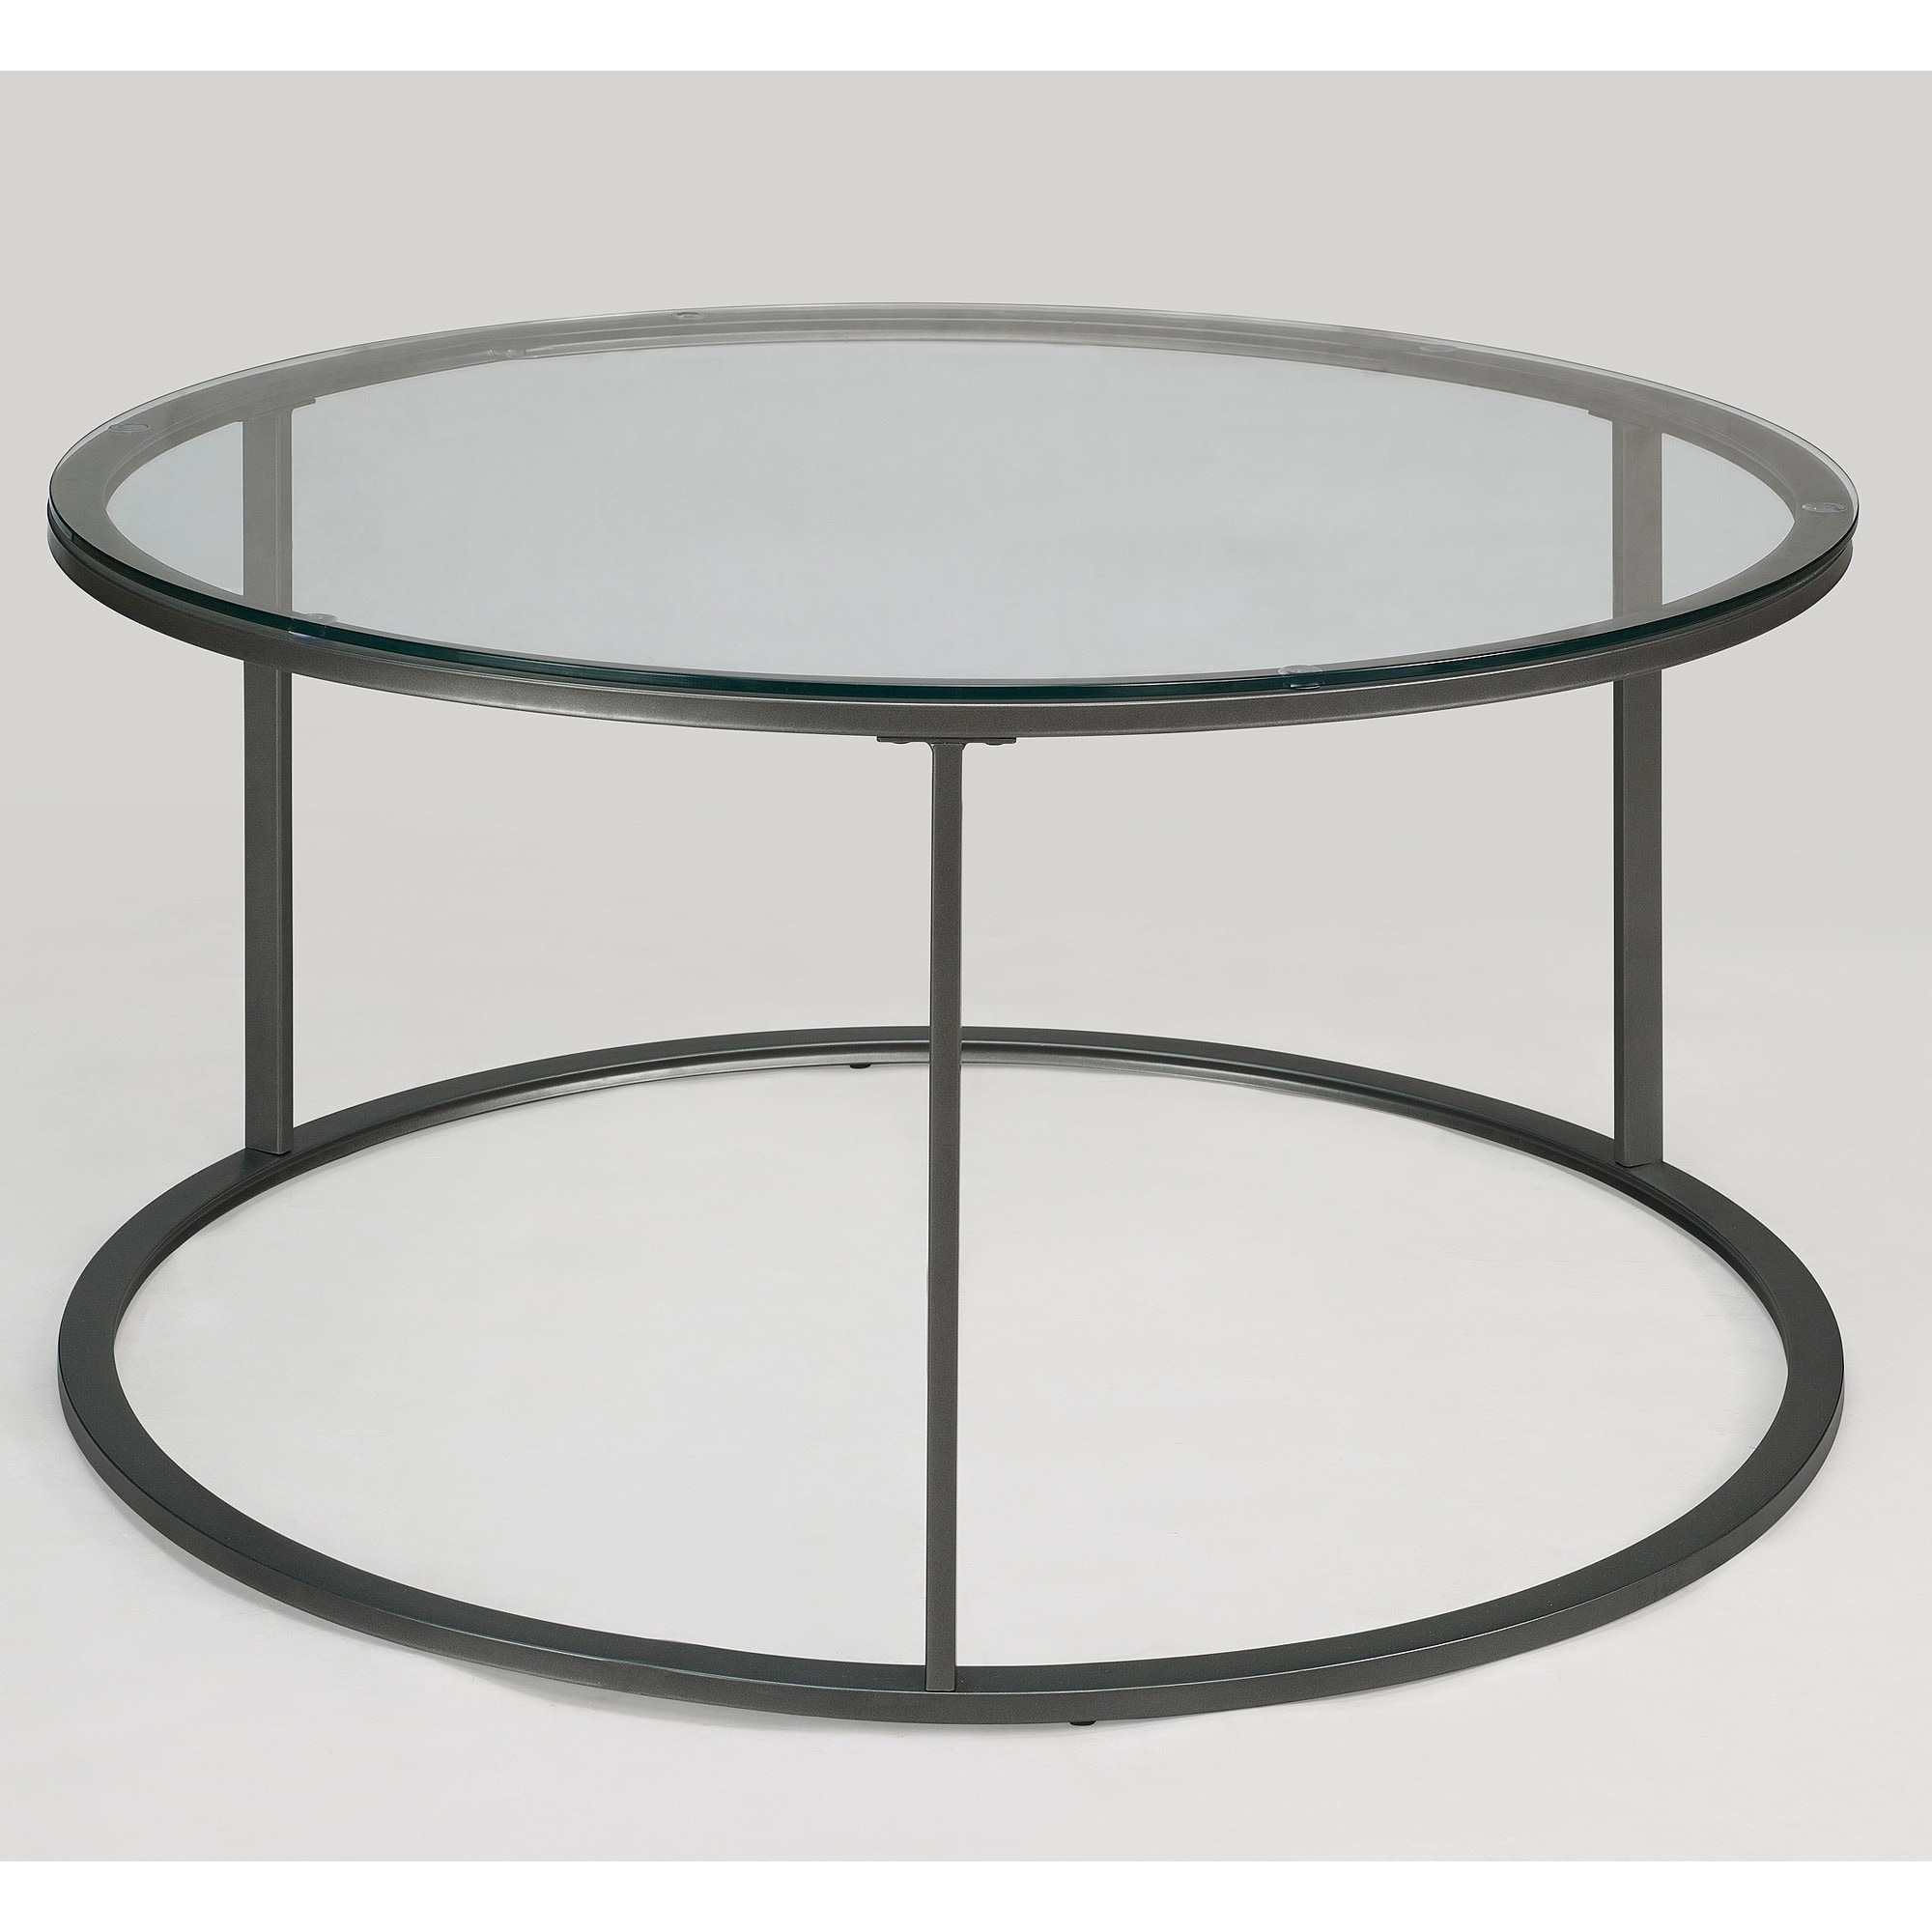 Amazing Clay Alder Home Round Glass Top Metal Coffee Table   Free Shipping Today    Overstock.com   14037744